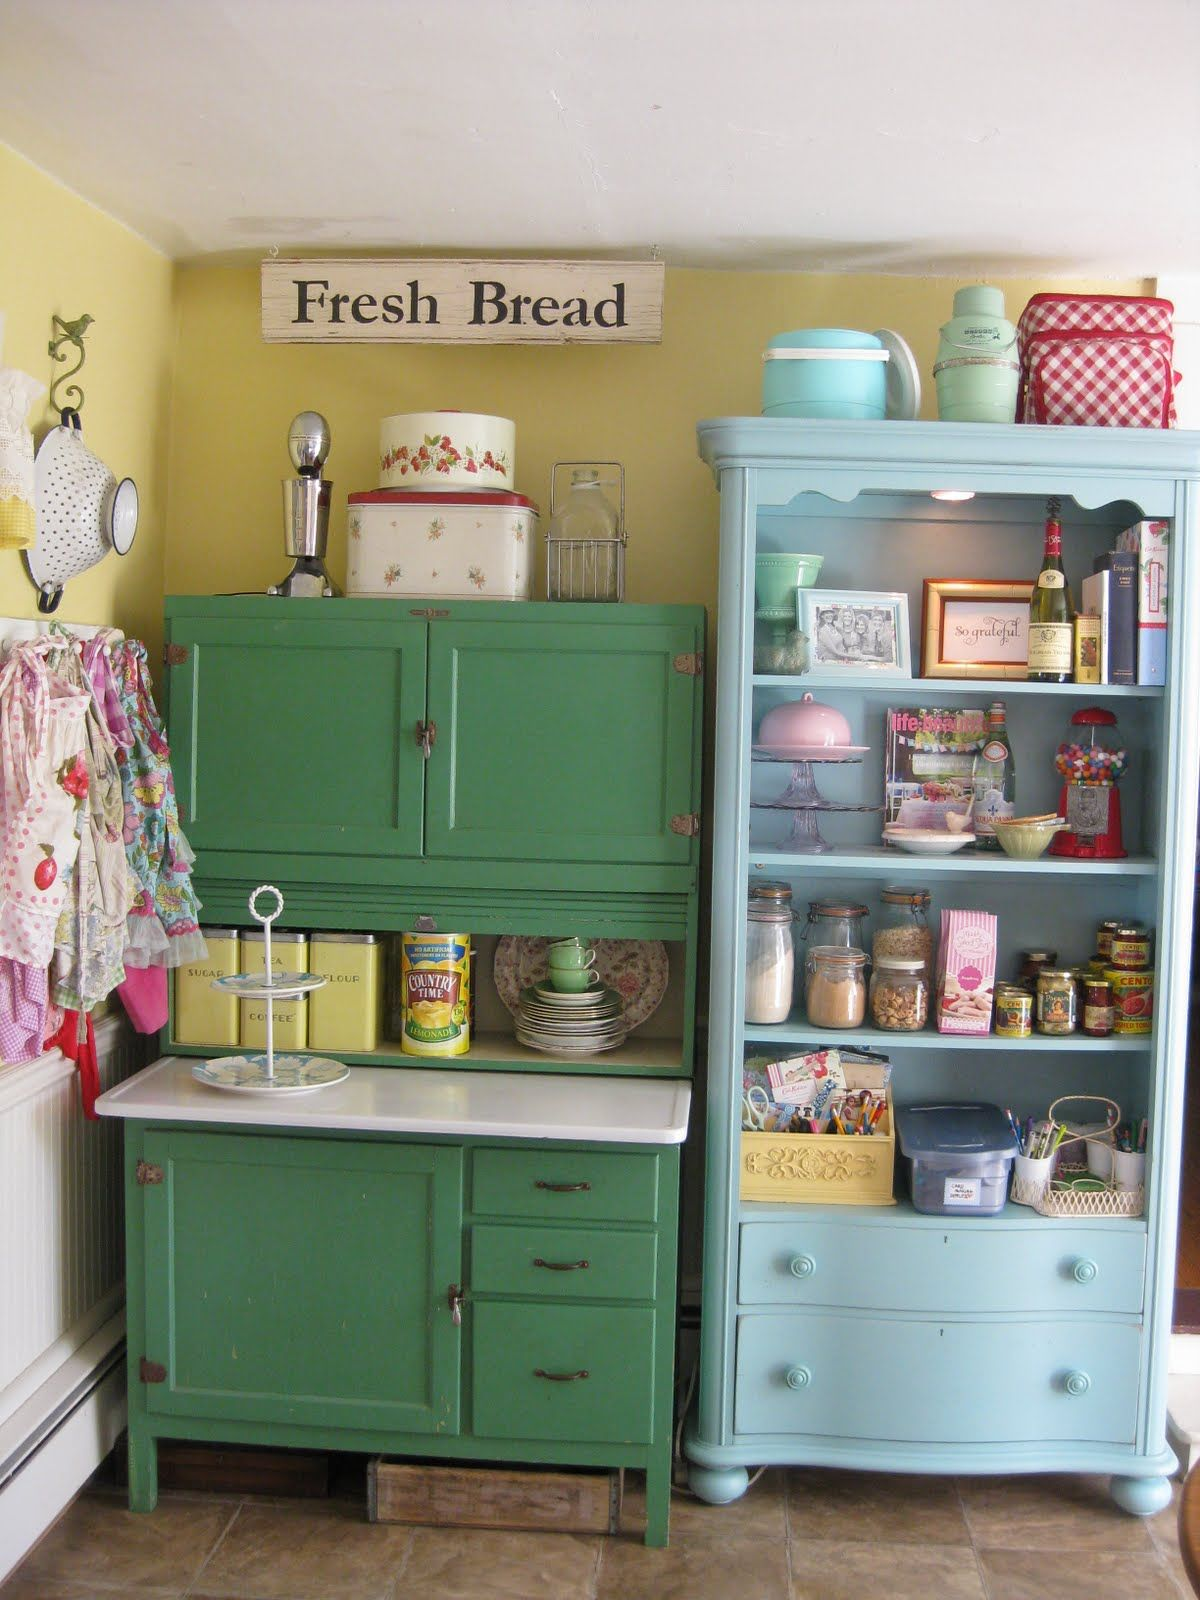 colorful vintage kitchen storage ideas pictures photos and images